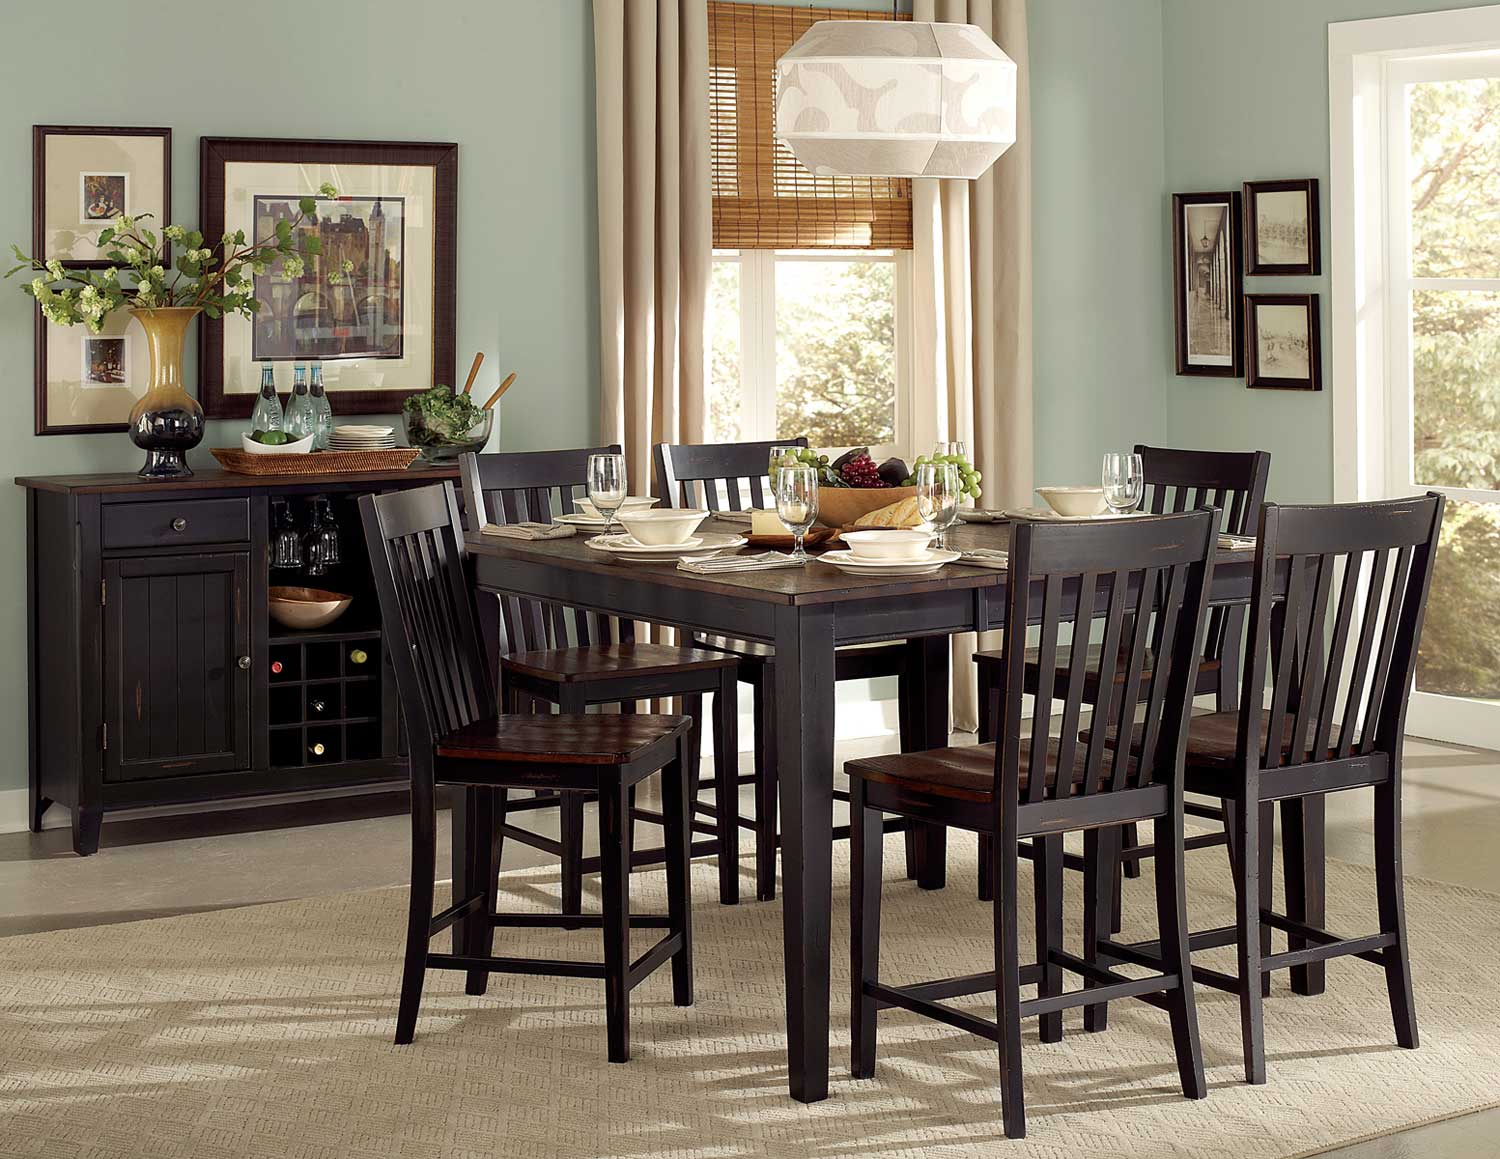 Homelegance Three Falls Counter Height Dining Set Two Tone Dark - Counter height table for two